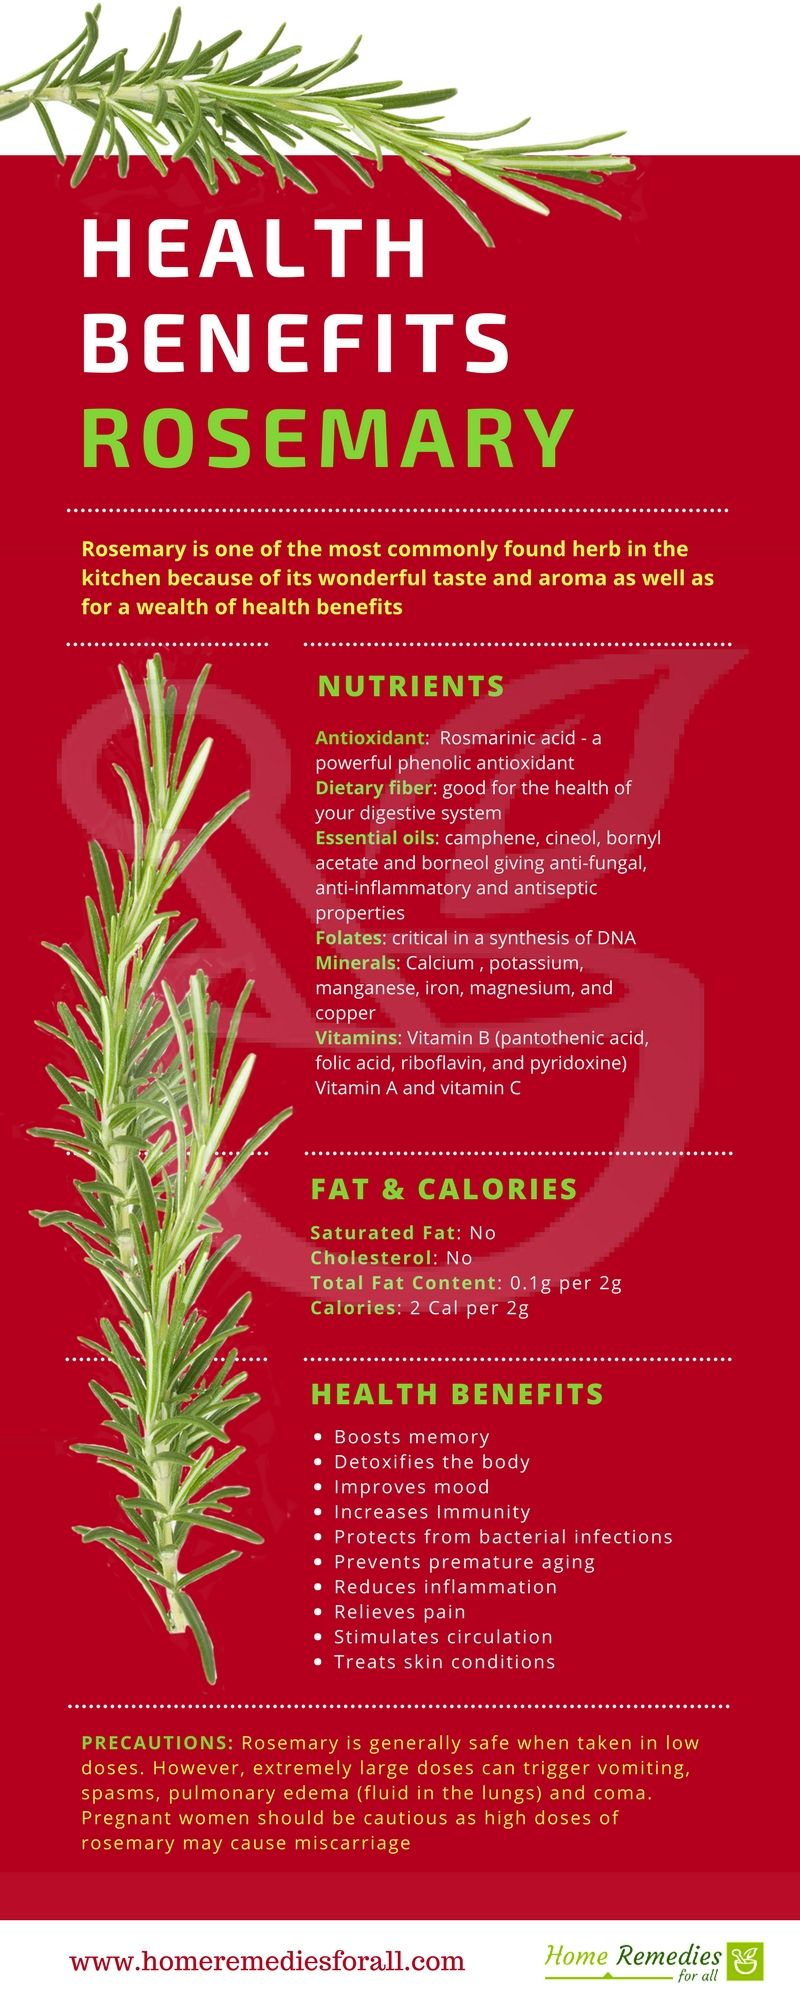 Health benefits of rosemary include its ability to boost memory improve mood reduce inflammation and relieve pain